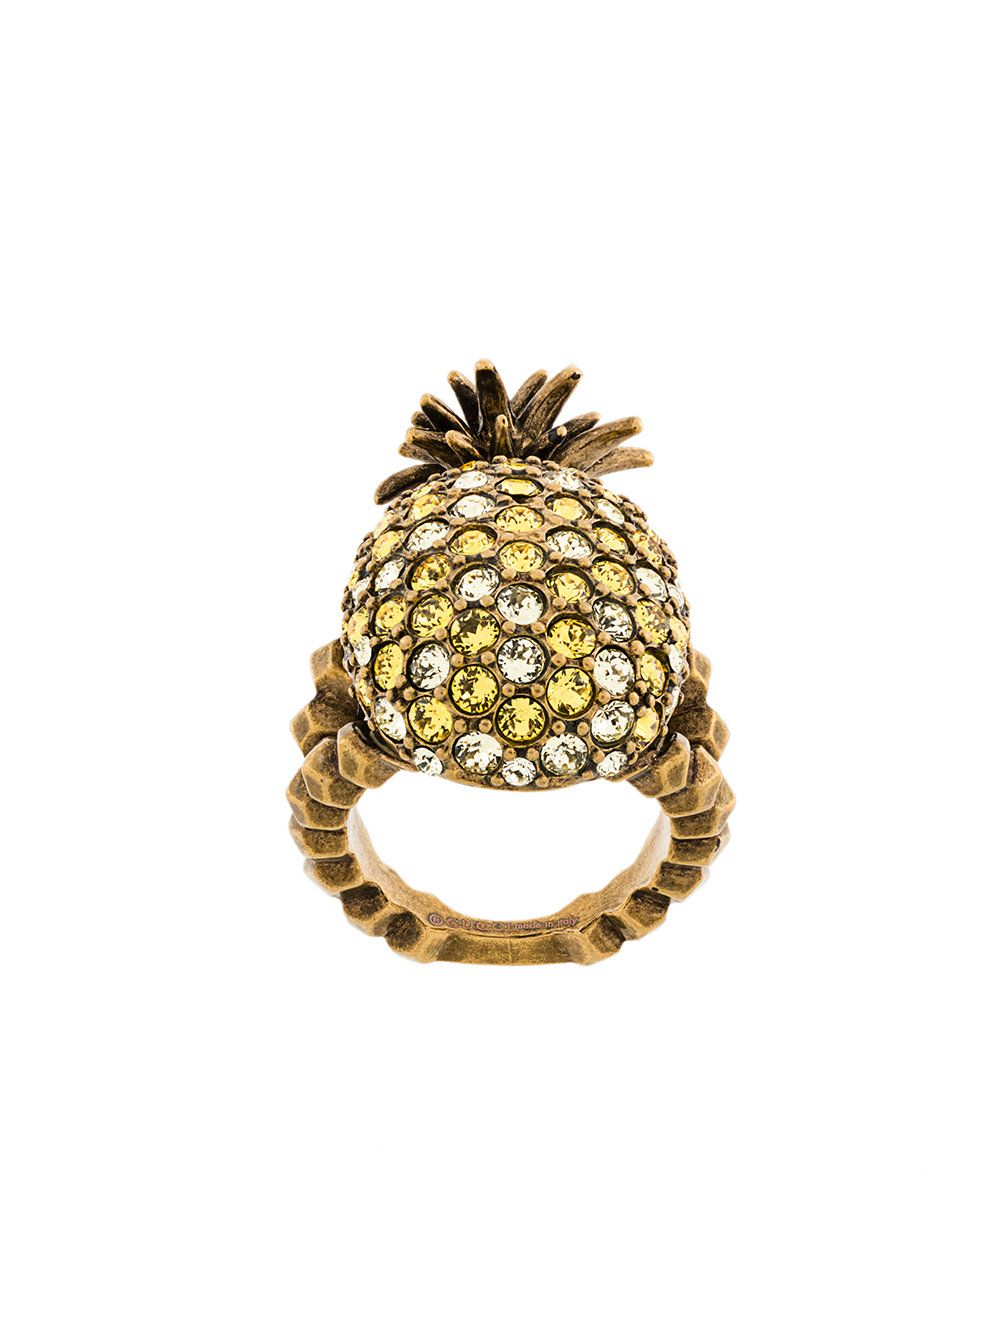 2a26a2841 Crystal Studded Pineapple Ring In Metal, Gold   Gucci, Ring and Delivery